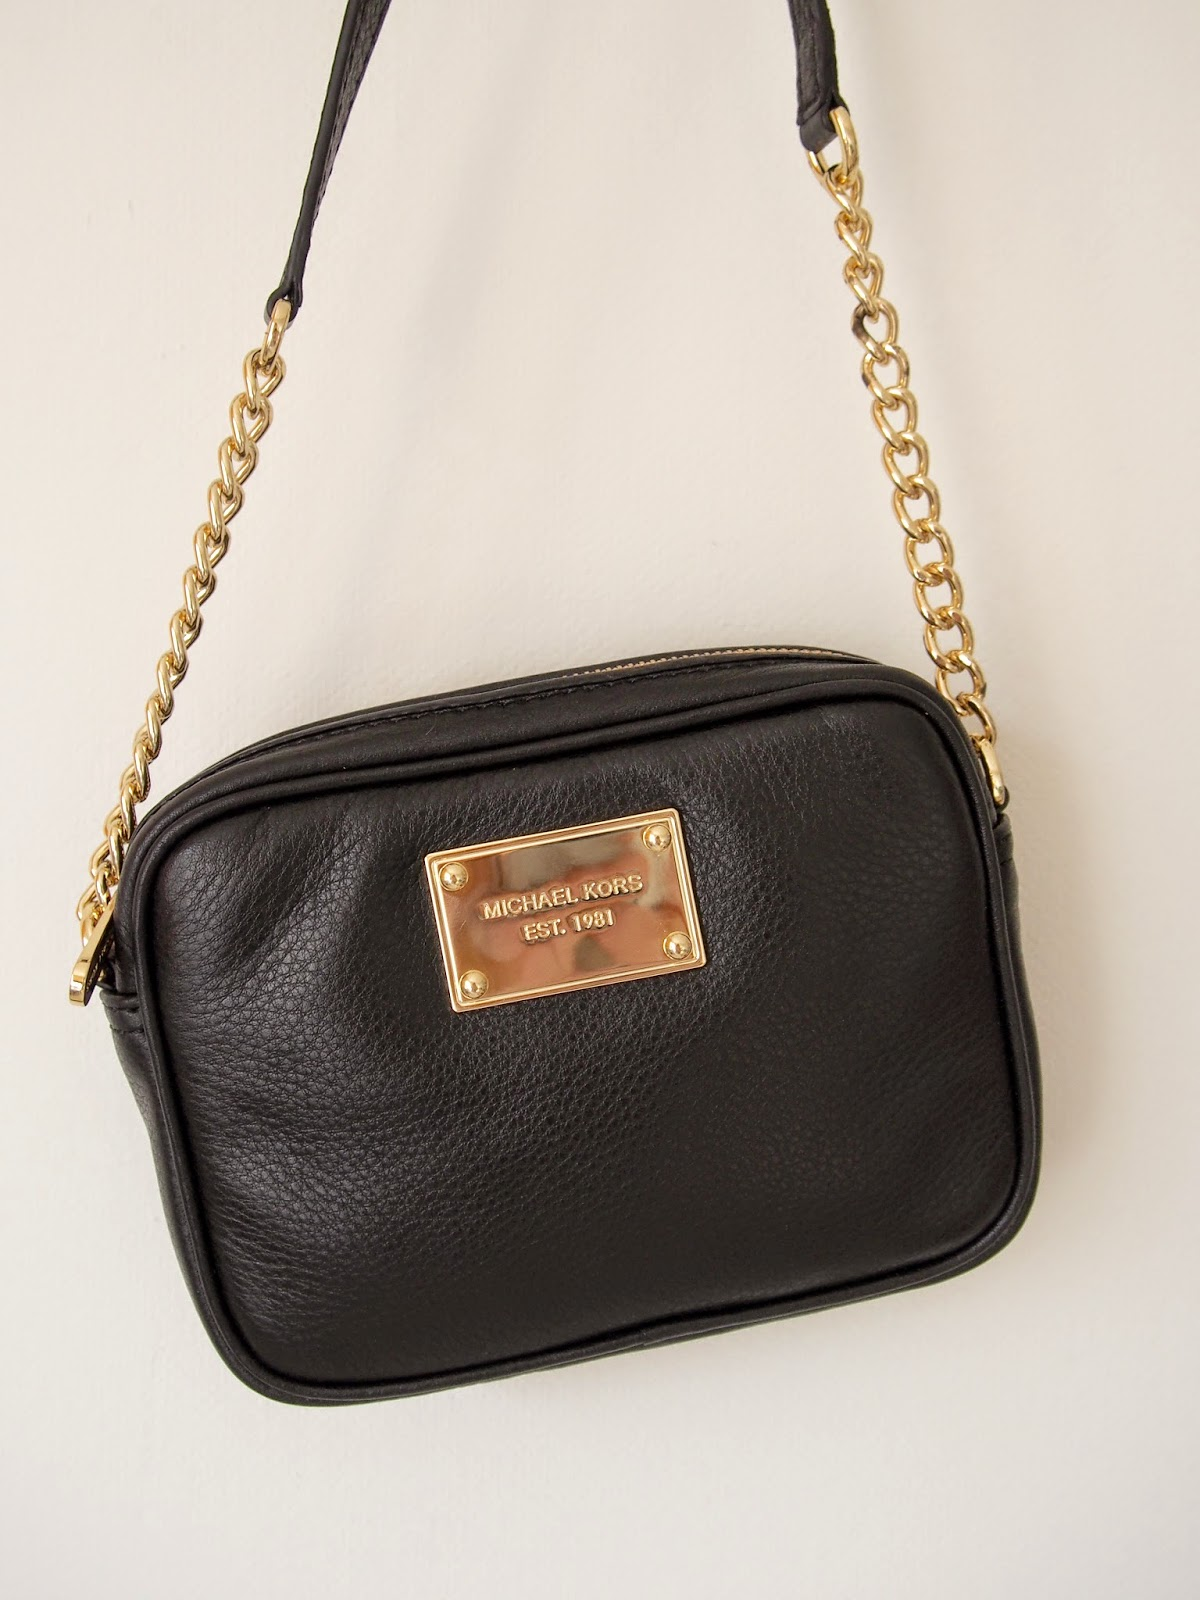 Michael Kors Jet Set Laukku Kokemuksia : Michael kors jet set crossbody thrill me tonight